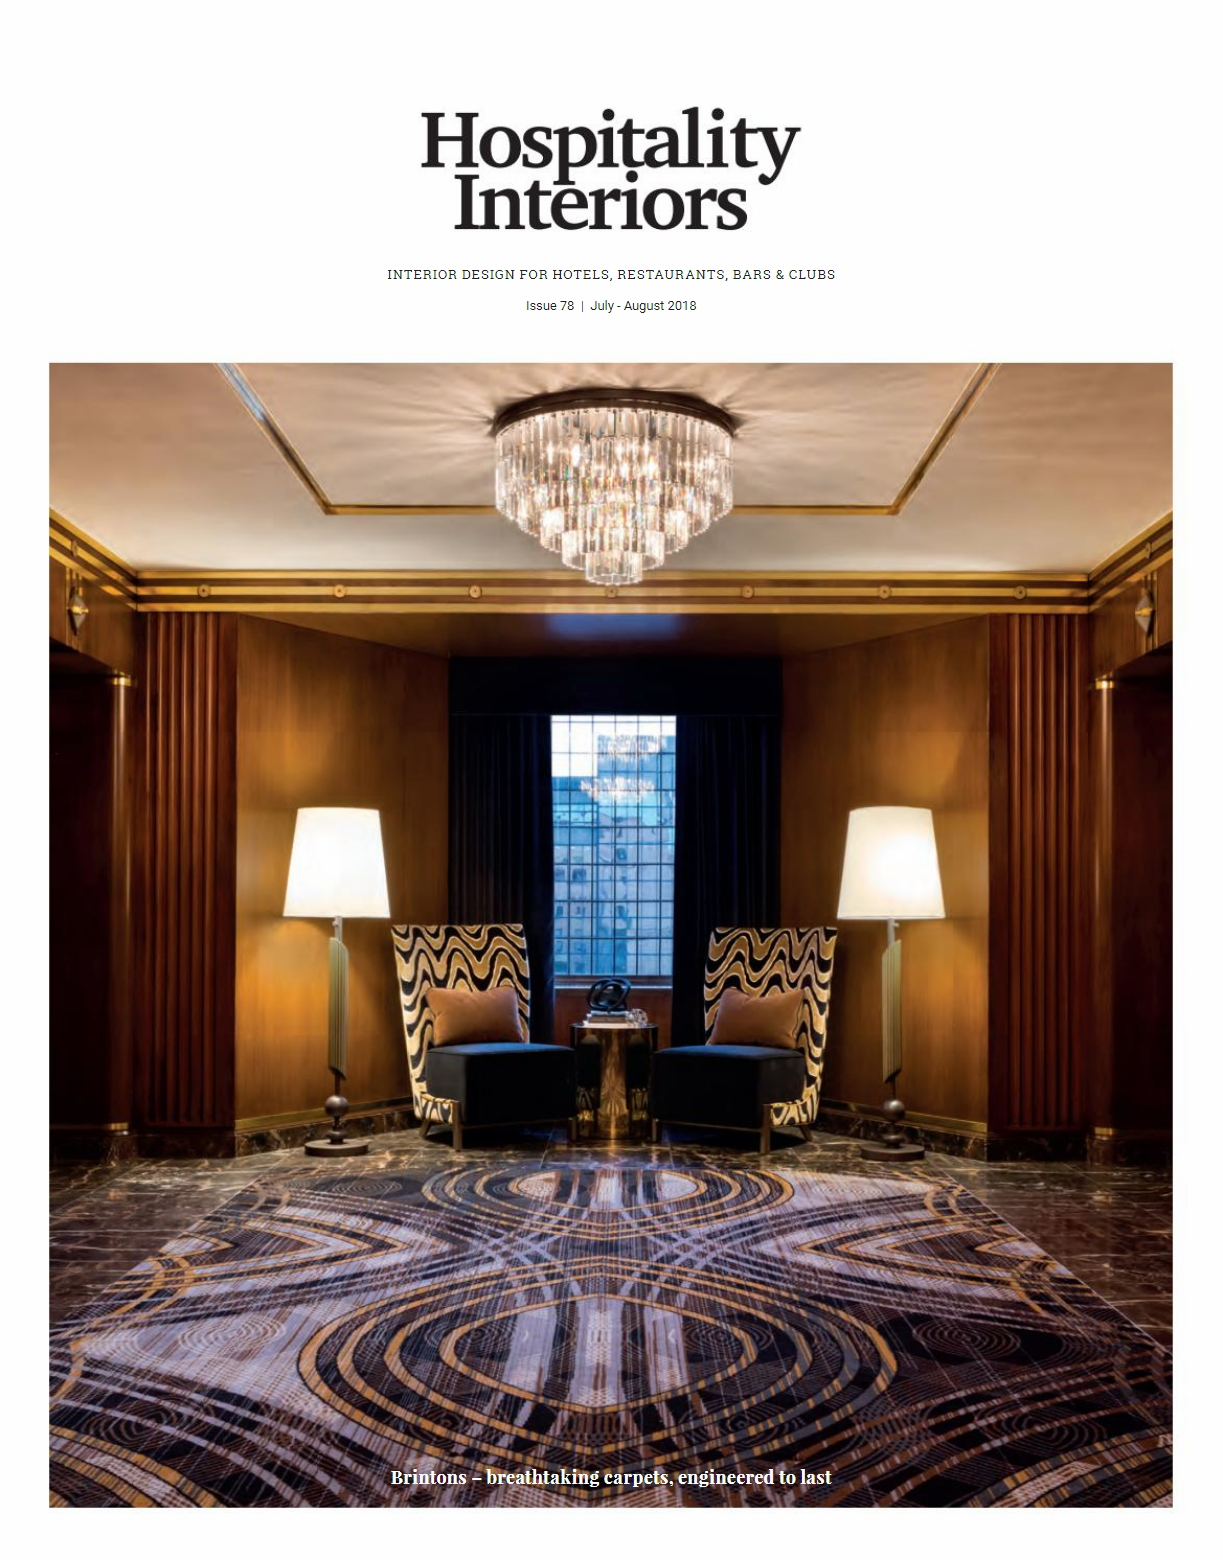 Hospitality Interiors Issue-78, Jul-Aug 2018